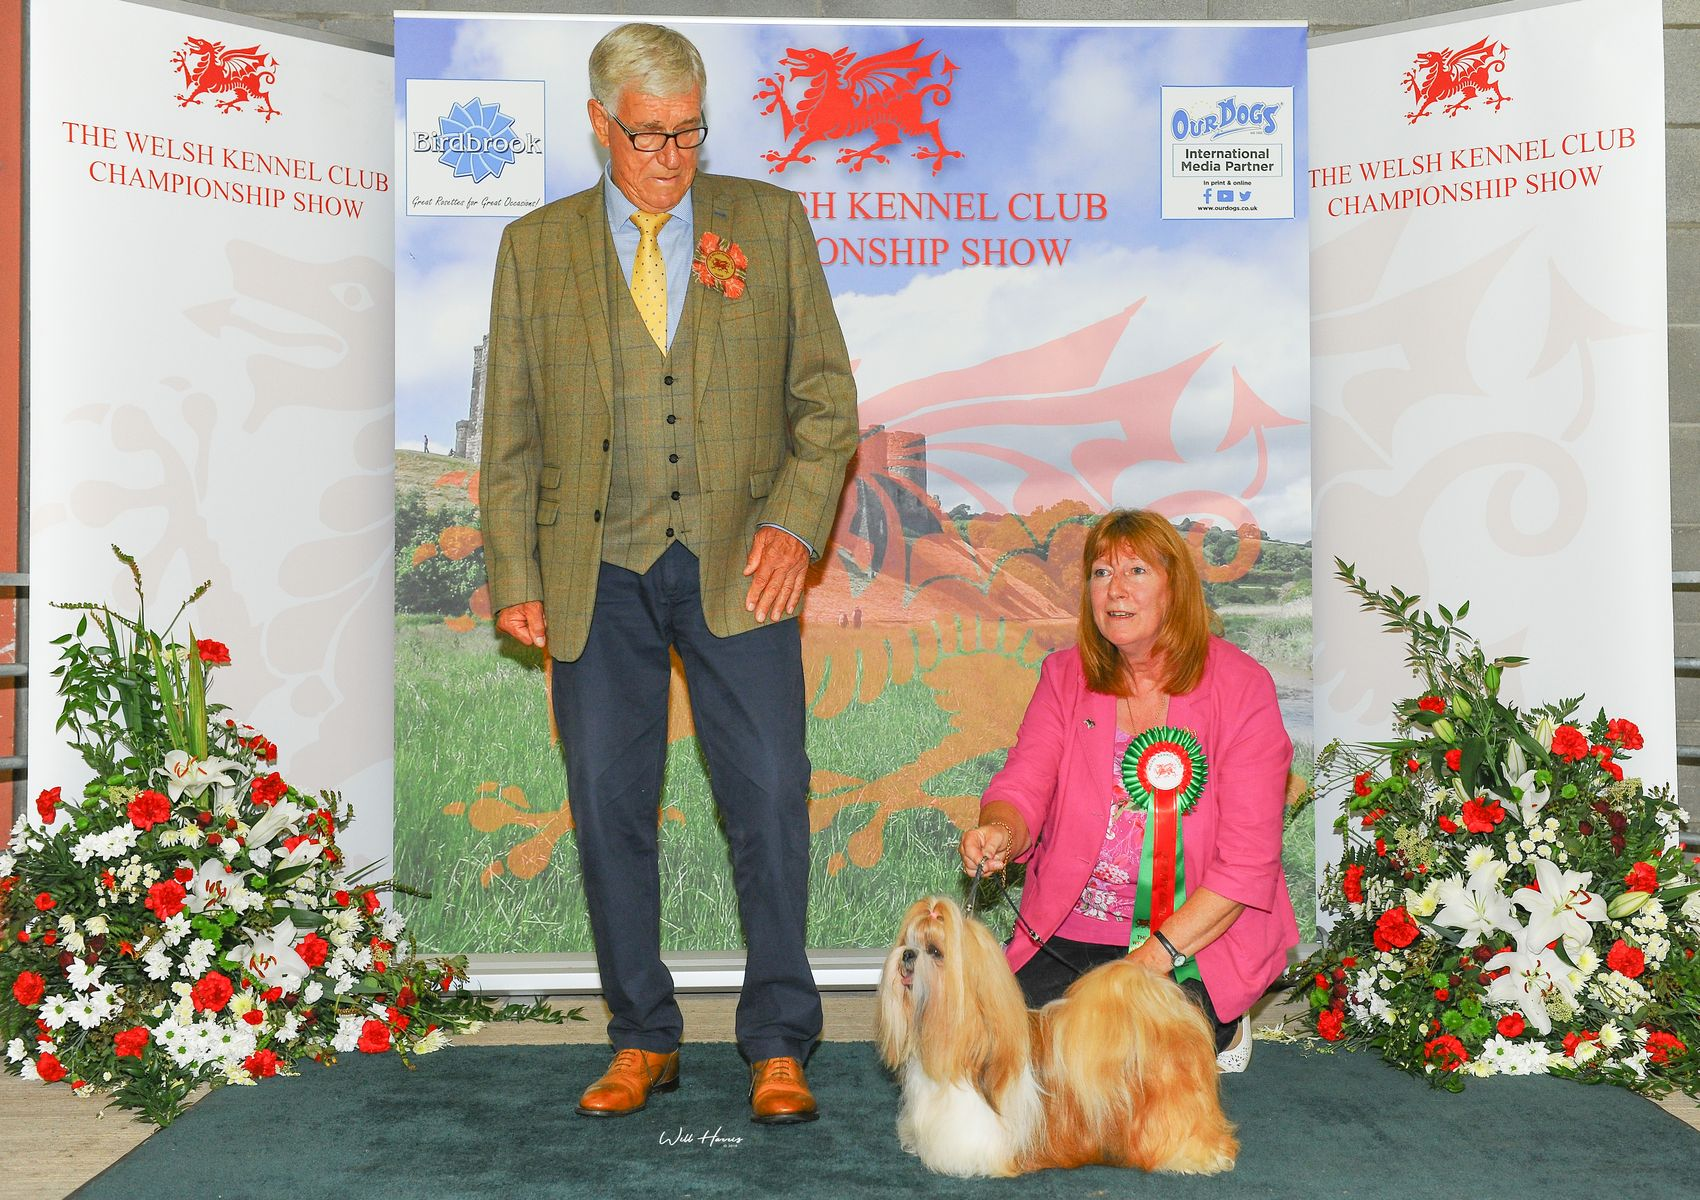 HOME - The Welsh Kennel Club The Welsh Kennel Club